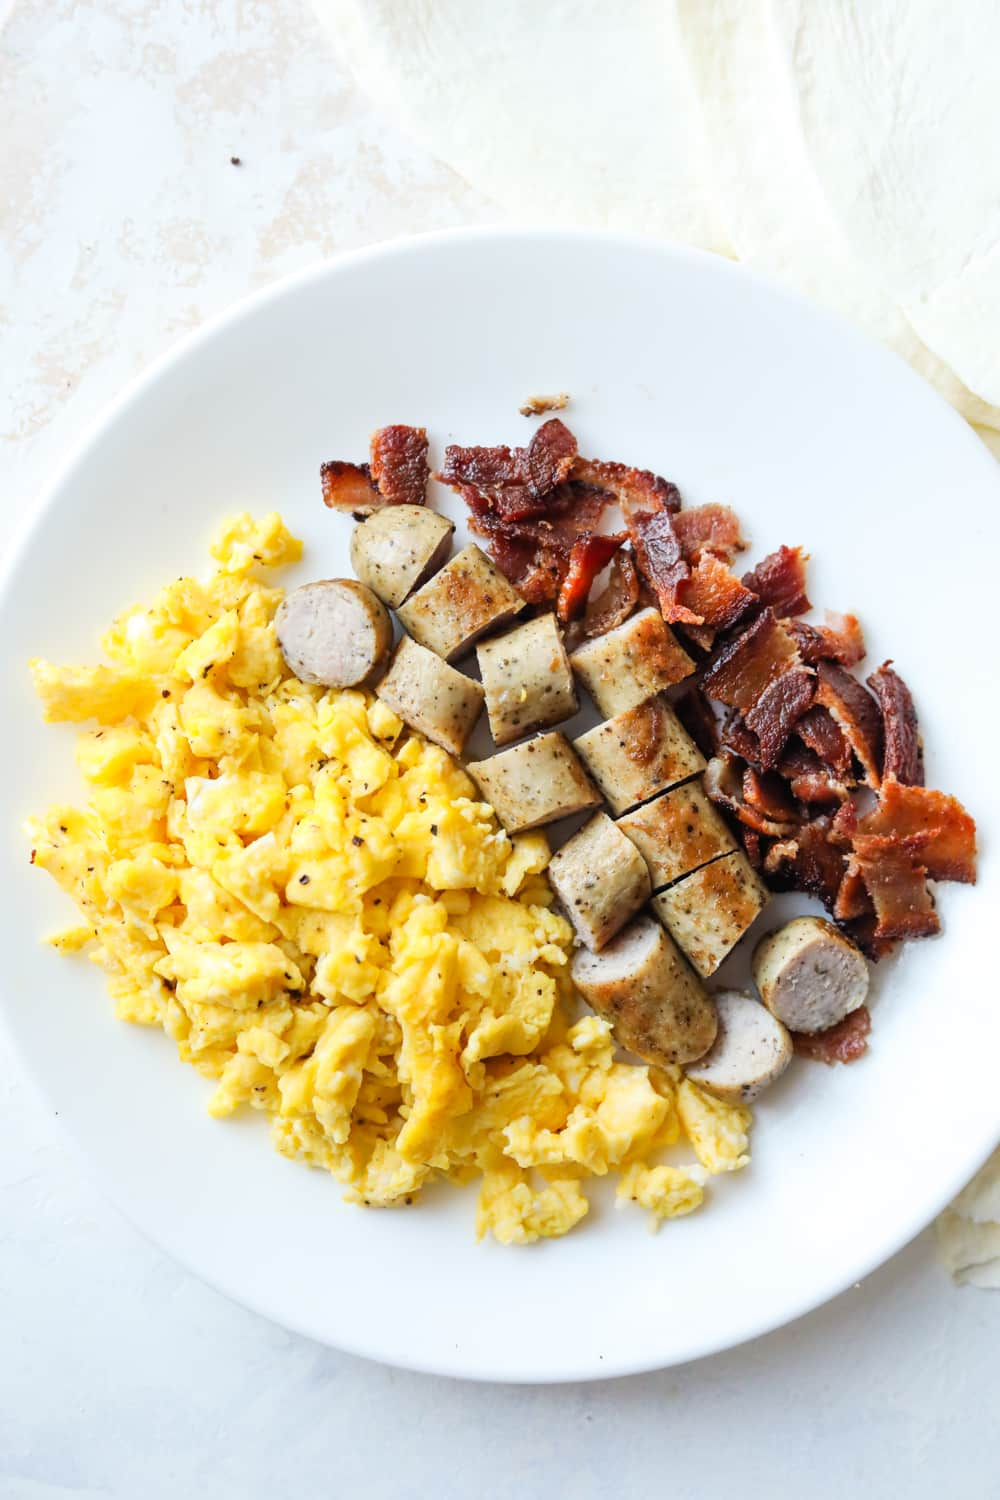 A white plate that is full of scrambled eggs and chopped bacon & sausage.